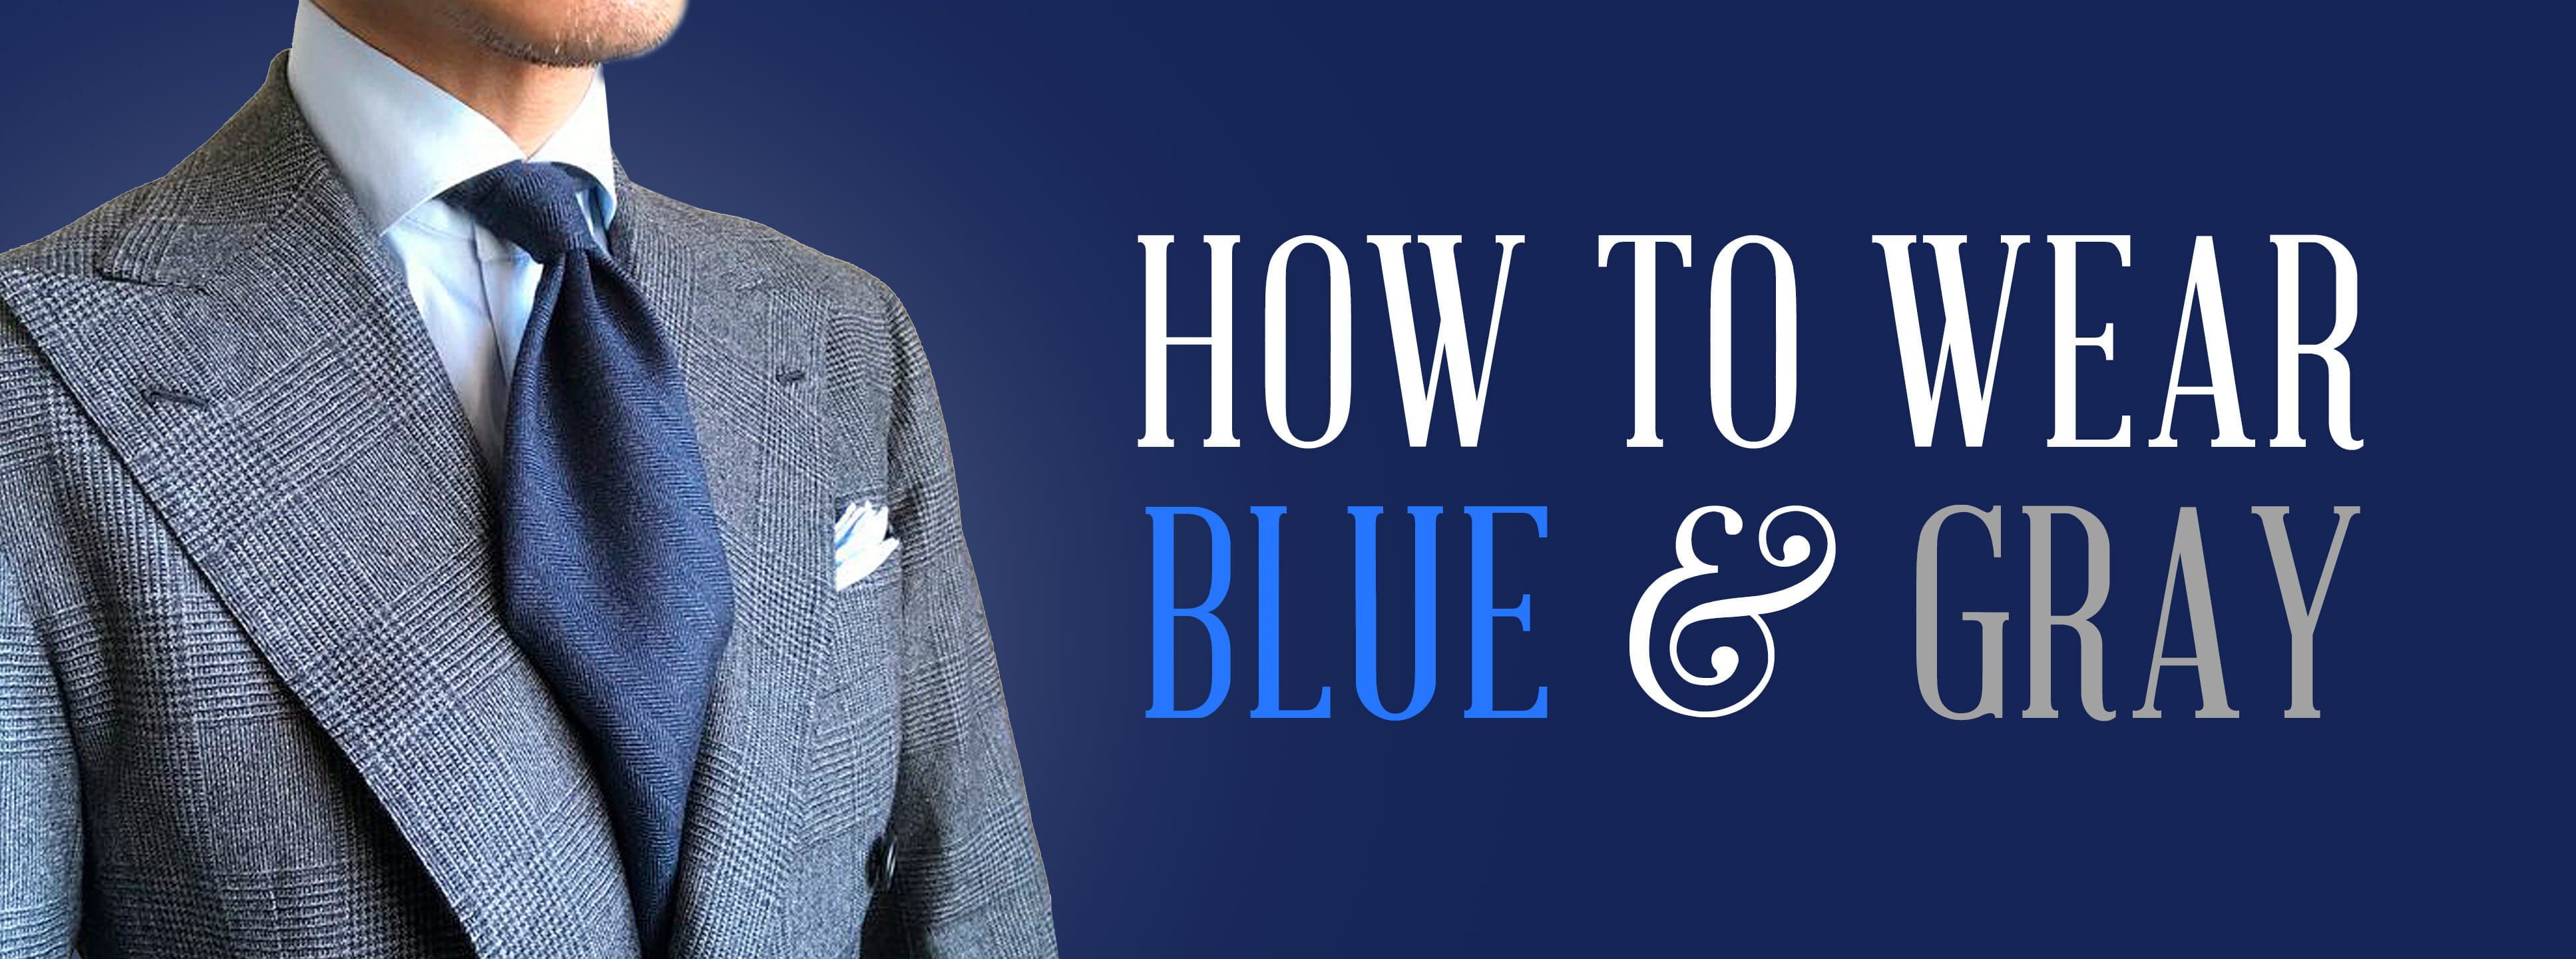 dbf75b1b38cc How to Wear Blue & Gray: A Classic Menswear Color Combination ...